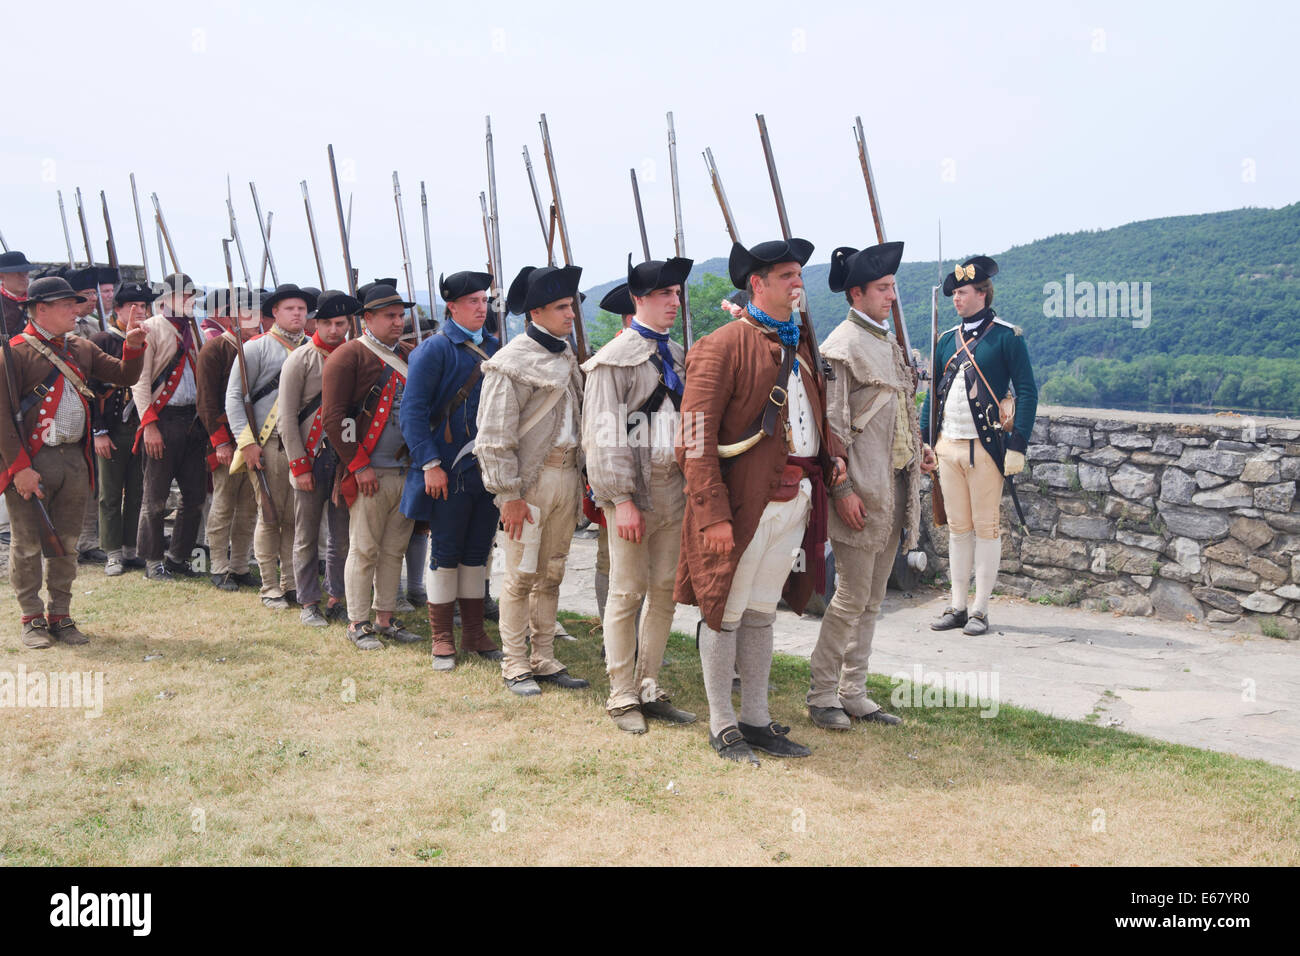 American Revolutionary war soldiers (reenactors) lined up to march after inspections by superior officers. - Stock Image